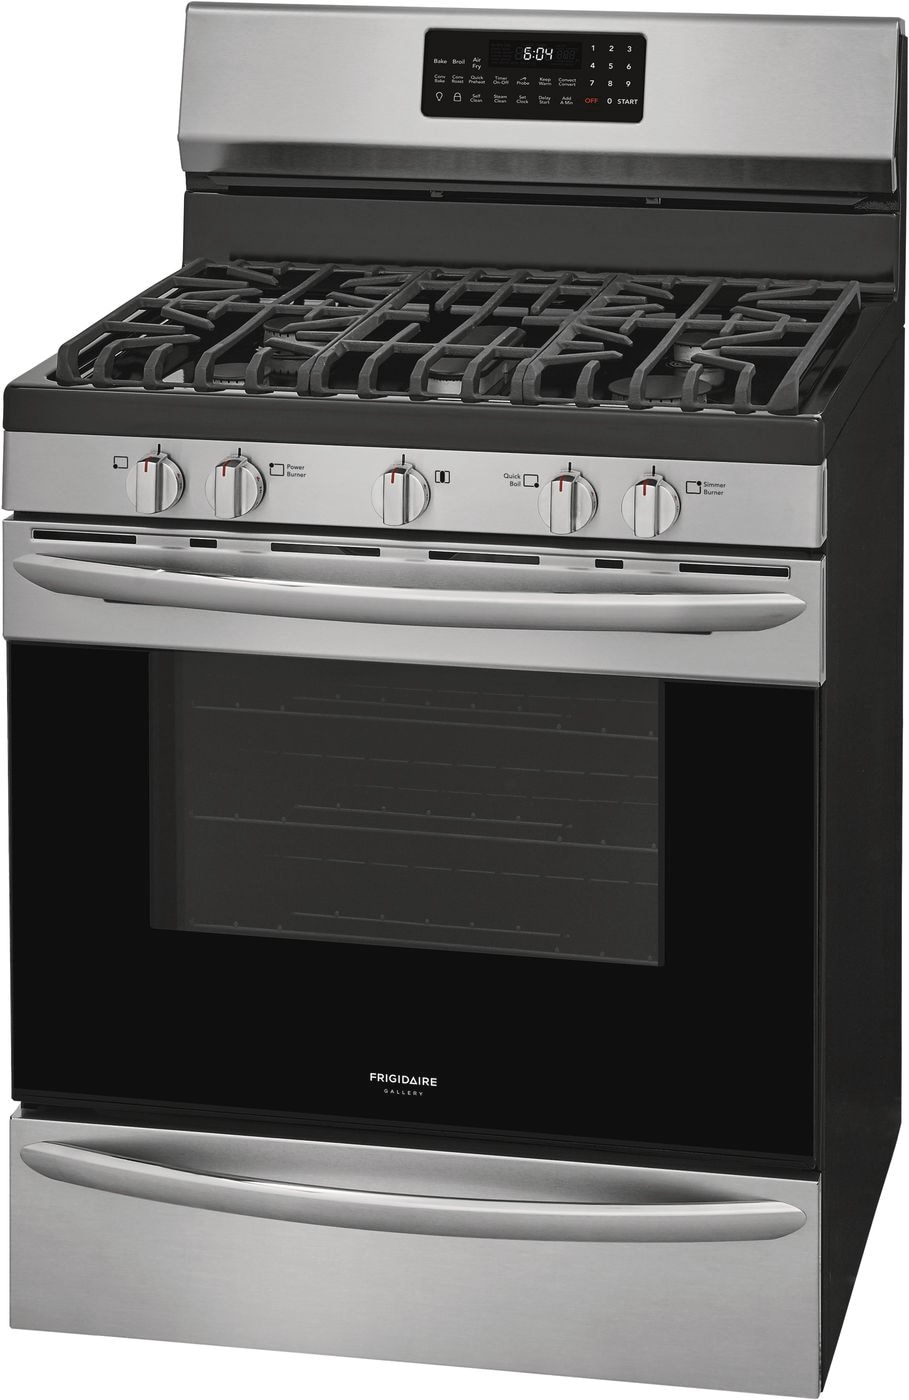 "Model: GCRG3060AF | Frigidaire Gallery 30"" Freestanding Gas Range with Air Fry"